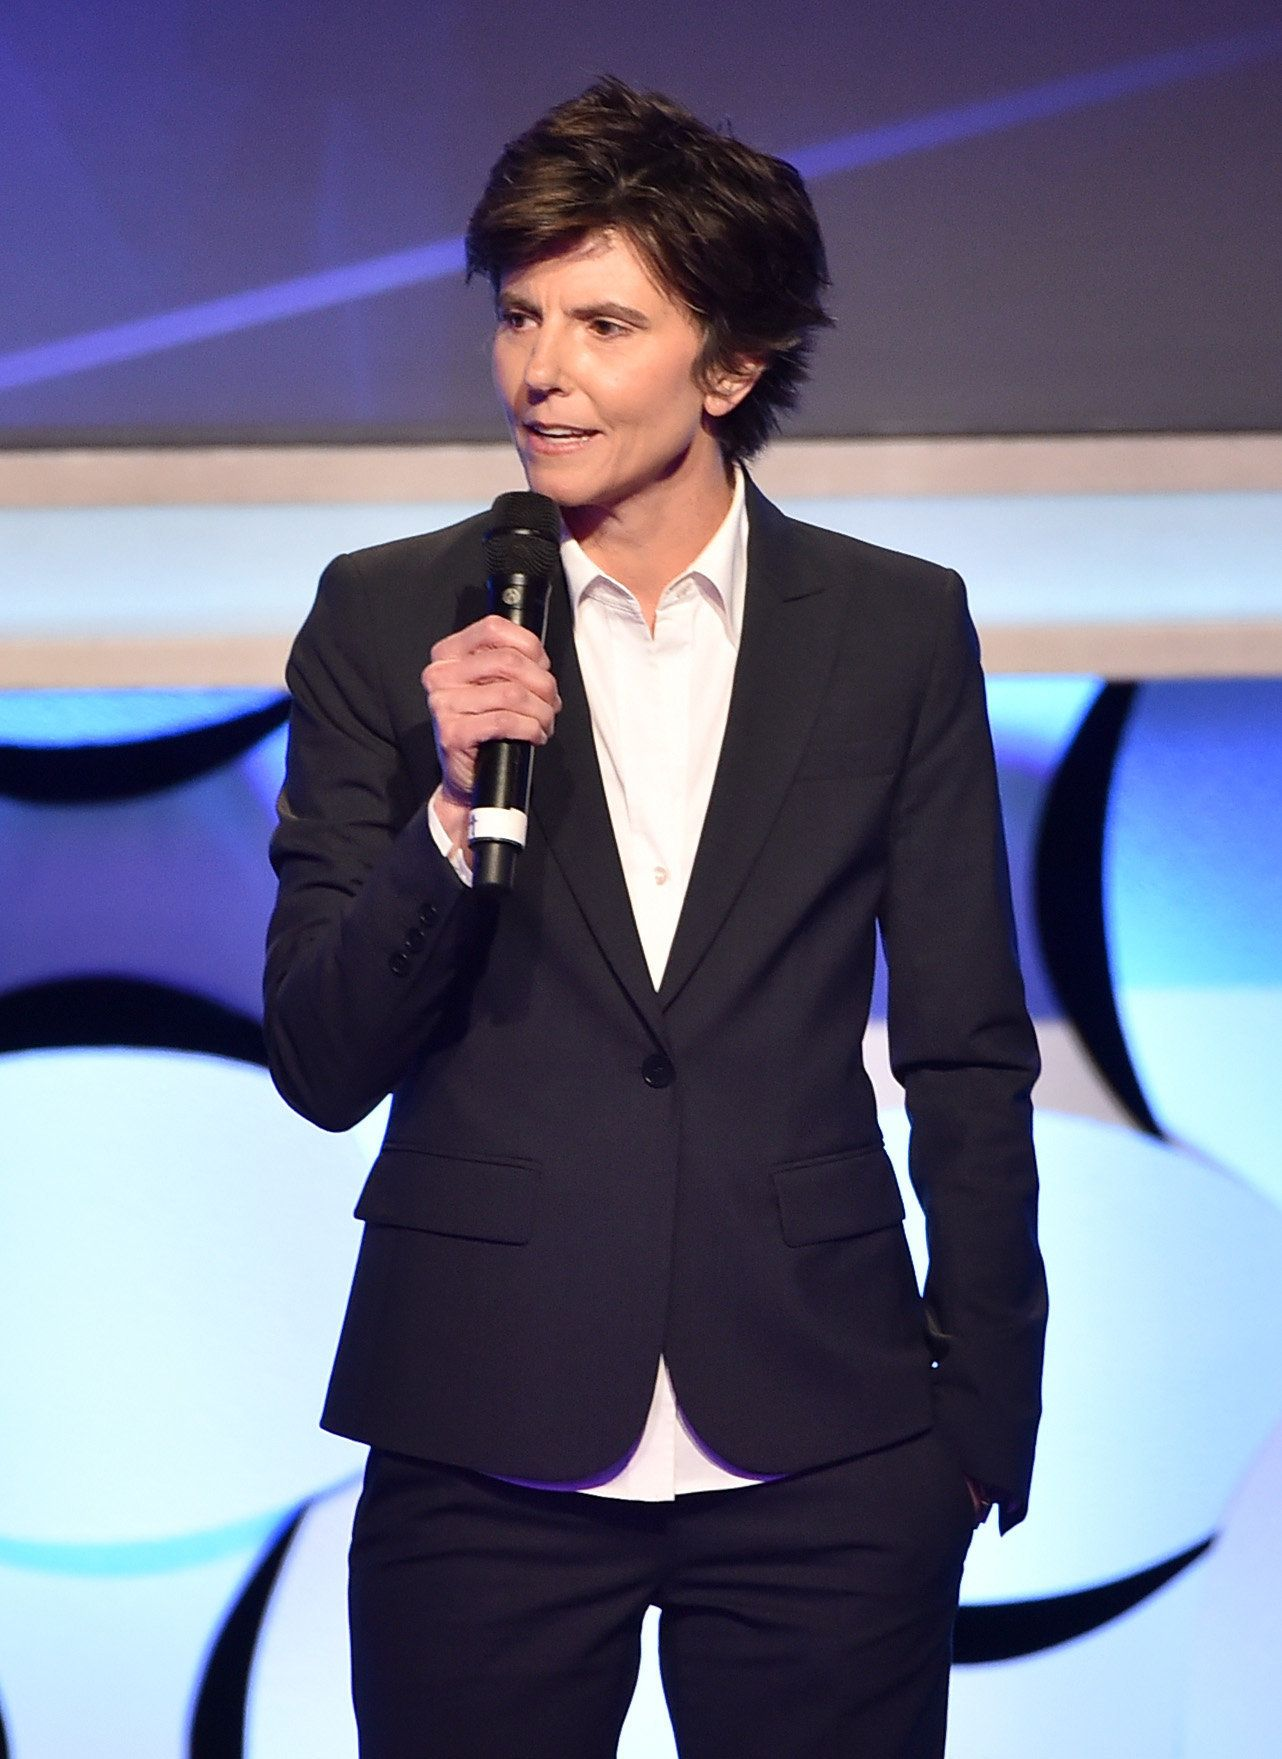 BEVERLY HILLS, CA - MARCH 21:  Comedian and host Tig Notaro onstage during the 26th Annual GLAAD Media Awards at The Beverly Hilton Hotel on March 21, 2015 in Beverly Hills, California.  (Photo by Kevin Winter/Getty Images for GLAAD)